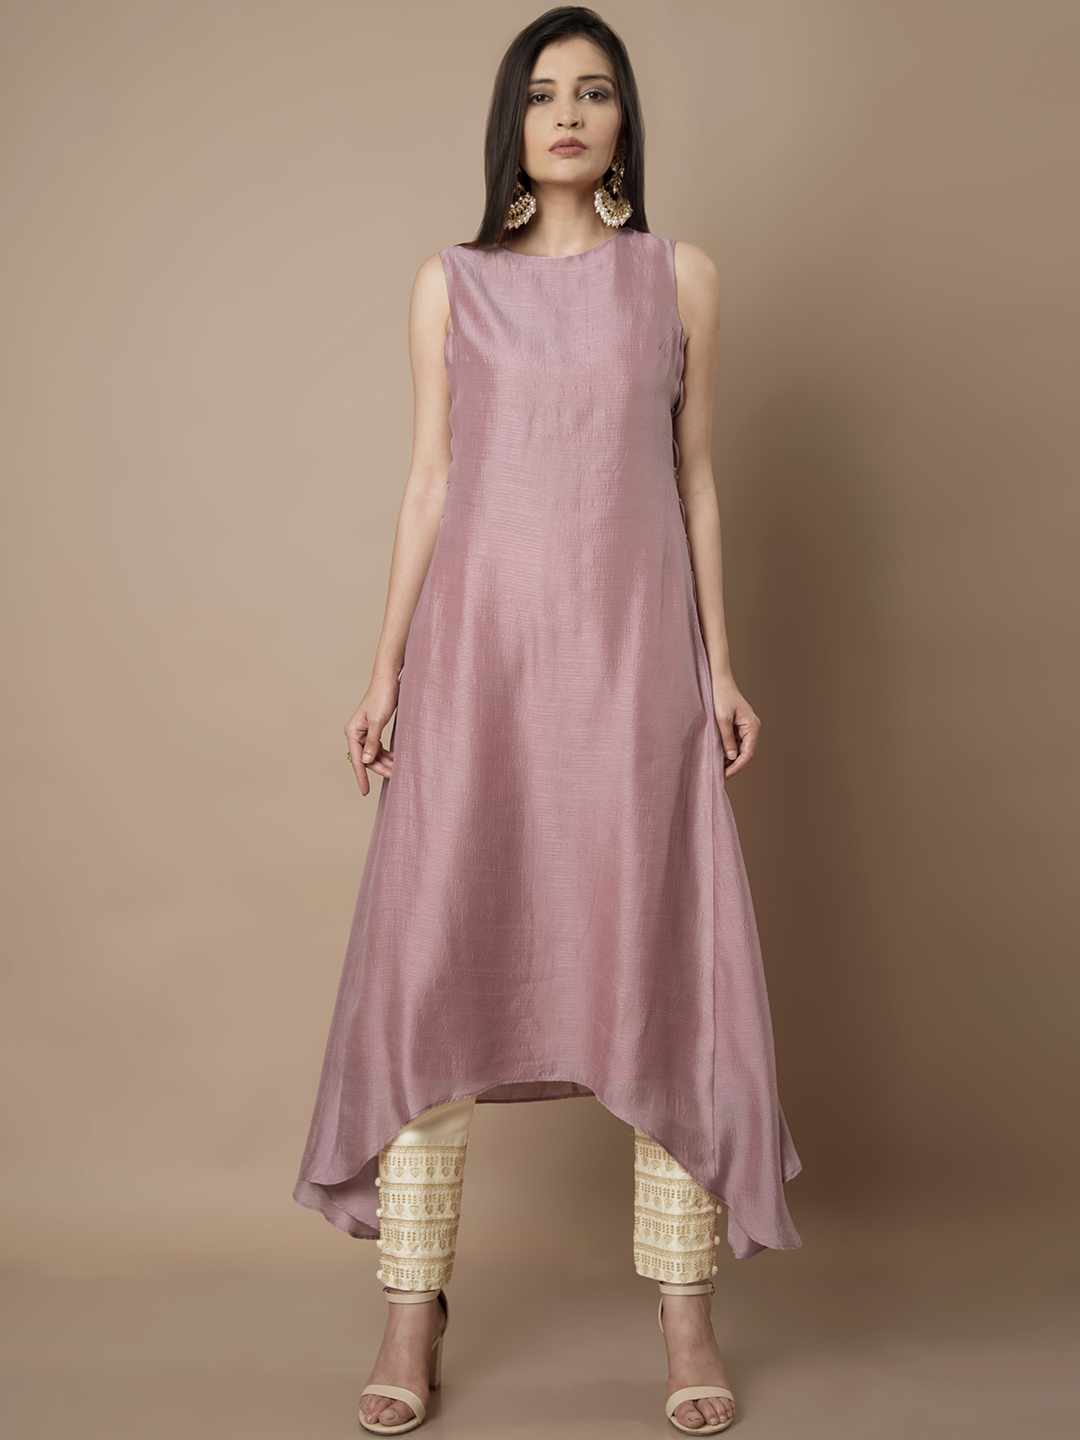 2-neck-designs-for-kurtis-Asymmetric-Kurti